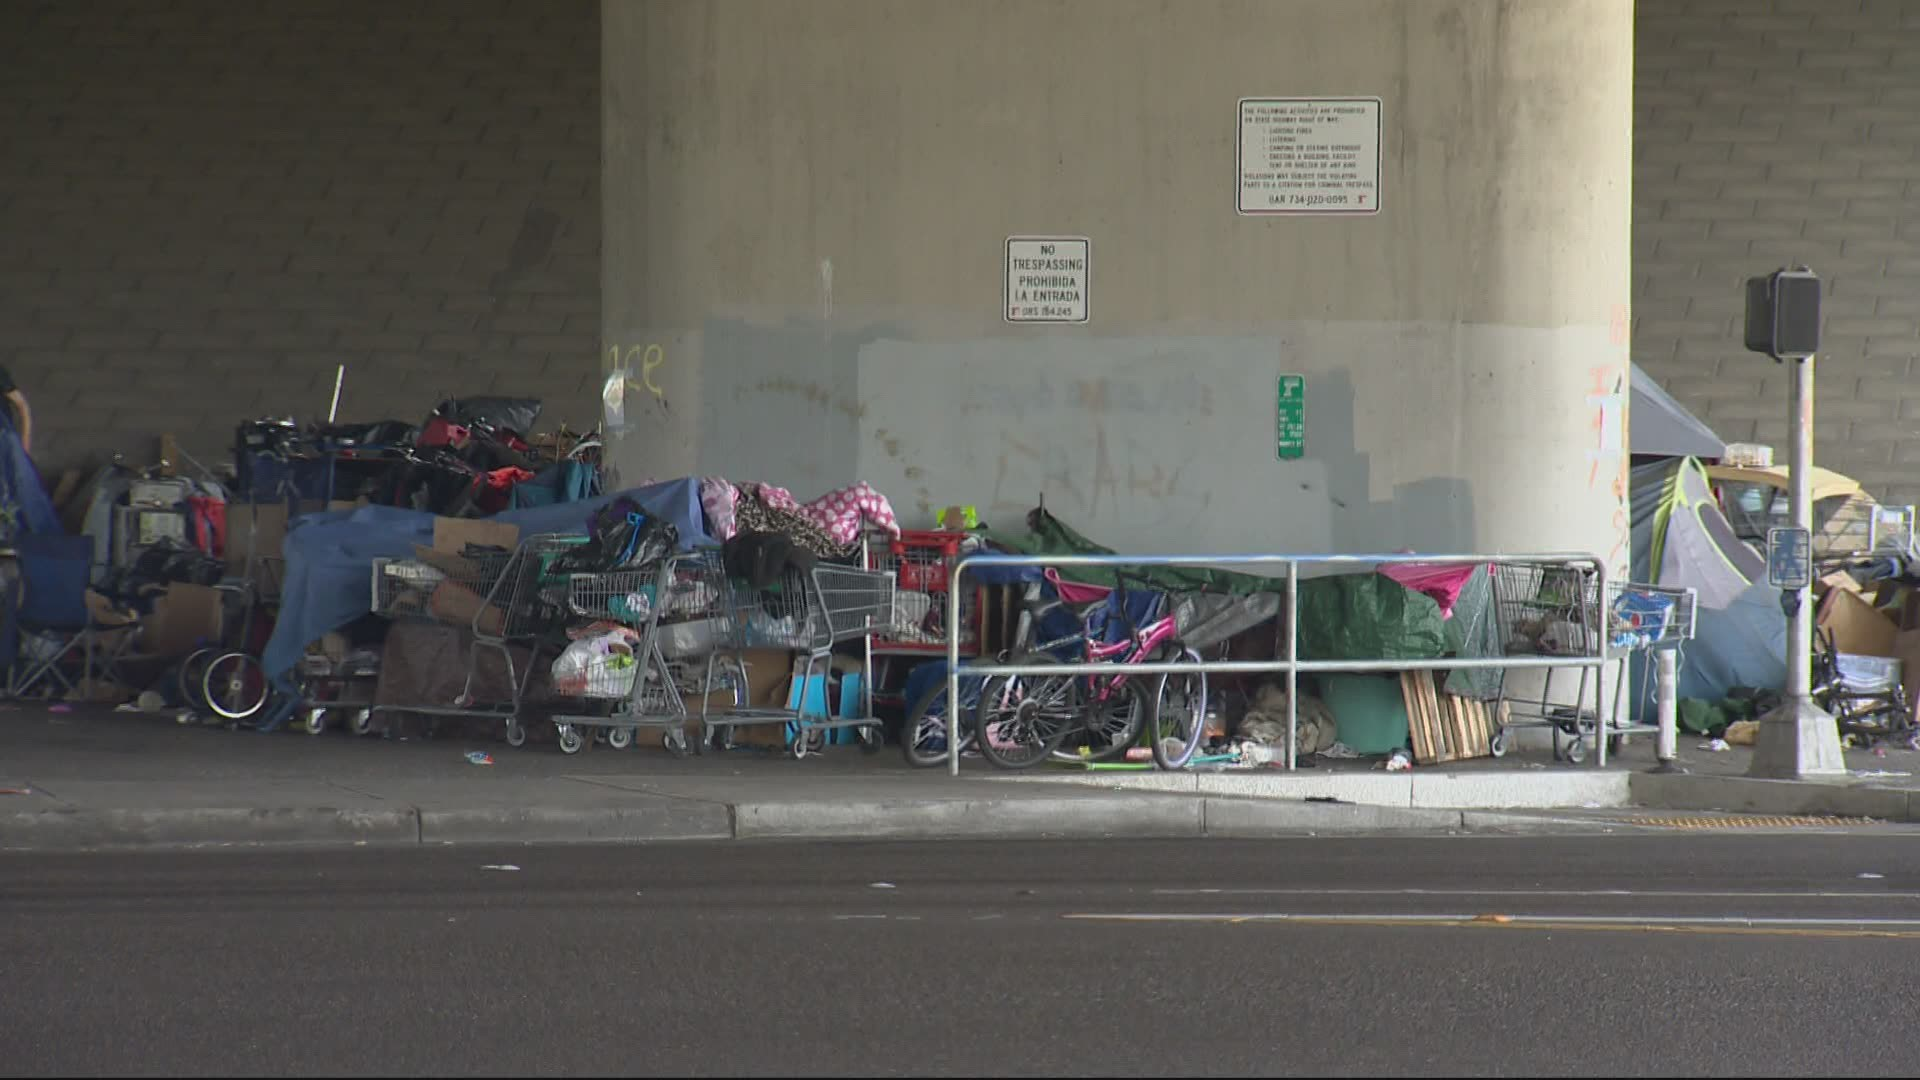 Salem wants to pay businesses to open as homeless shelters | kgw.com